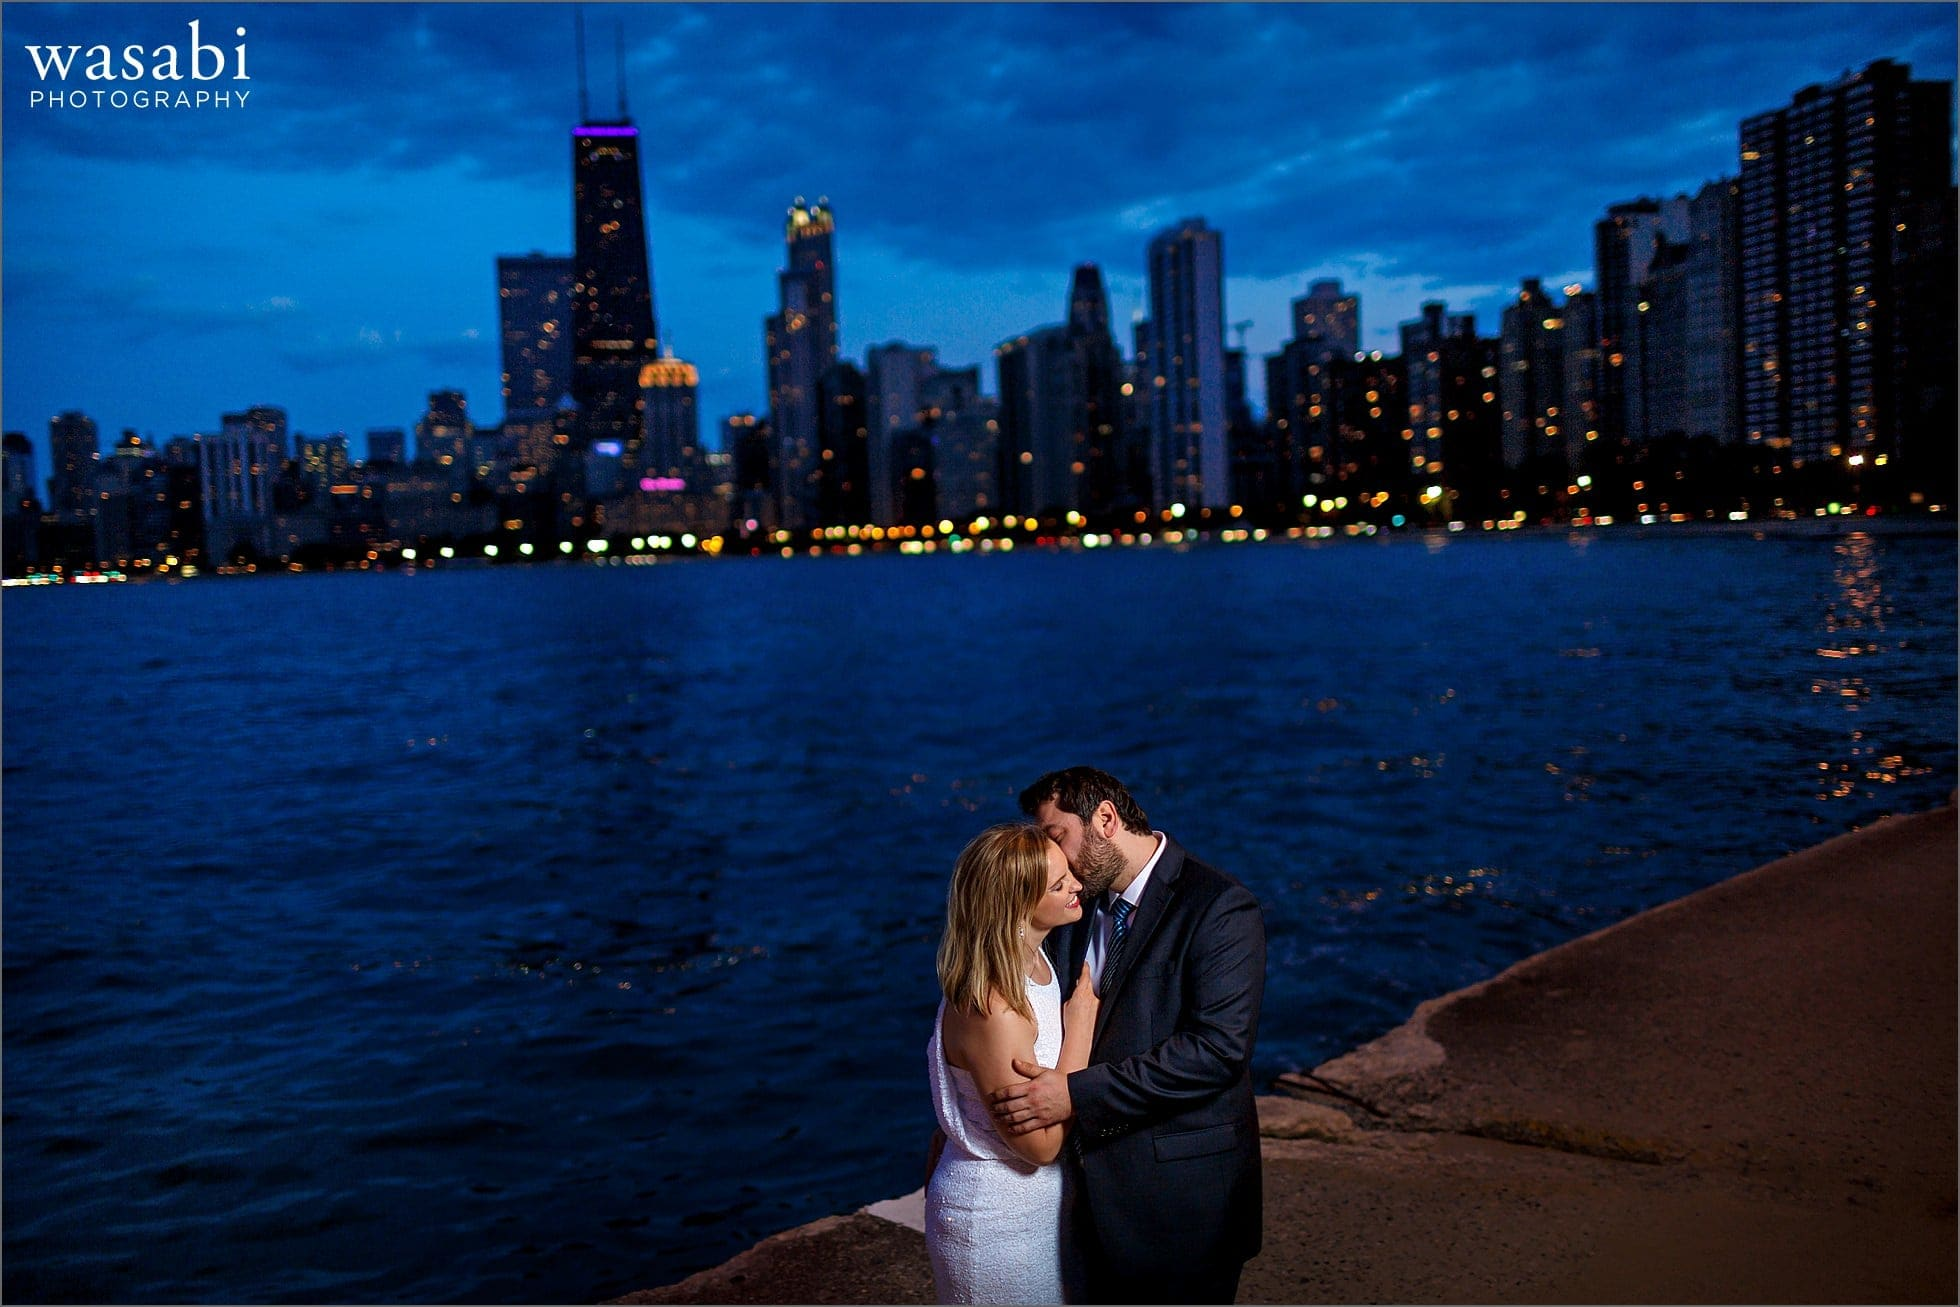 North Avenue beach engagement photos with a couple kissing and the Chicago skyline city lights in the background